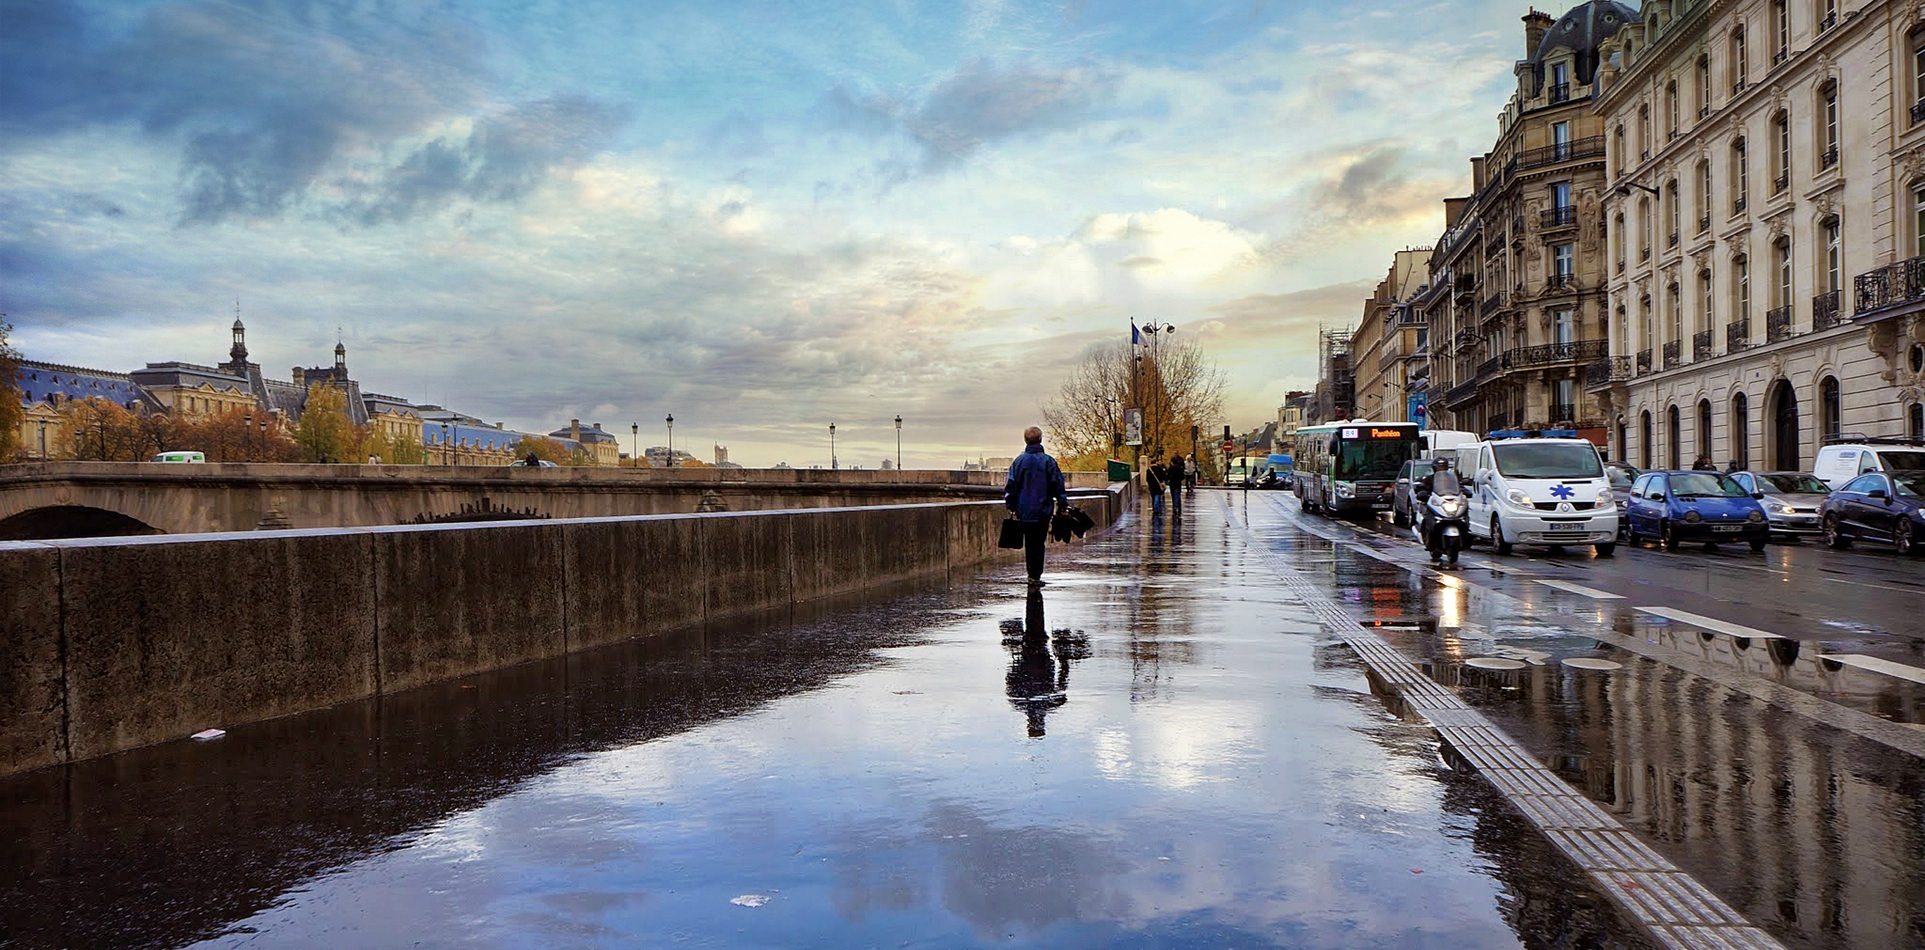 Weather Gallery - Sky and Puddle